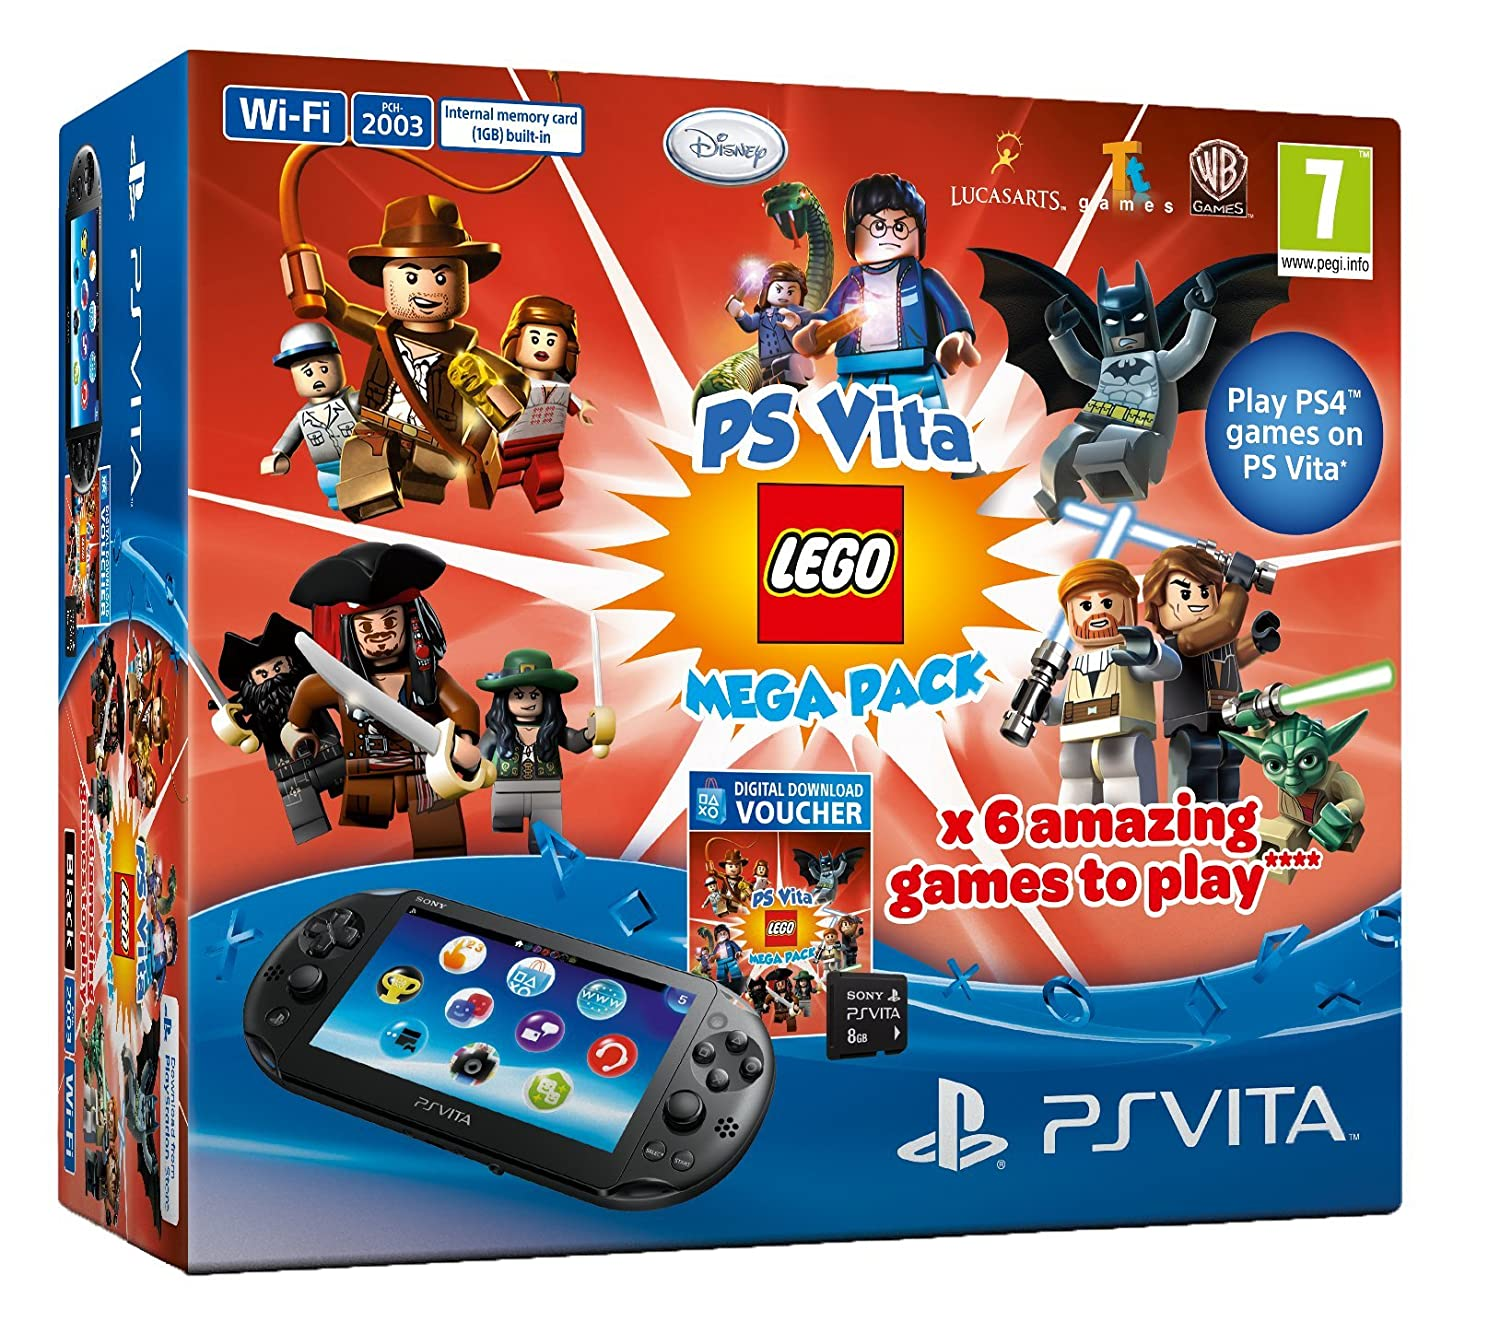 Amazon.com: Sony PS Vita Slim Console Lego Mega Pack Bundle ...